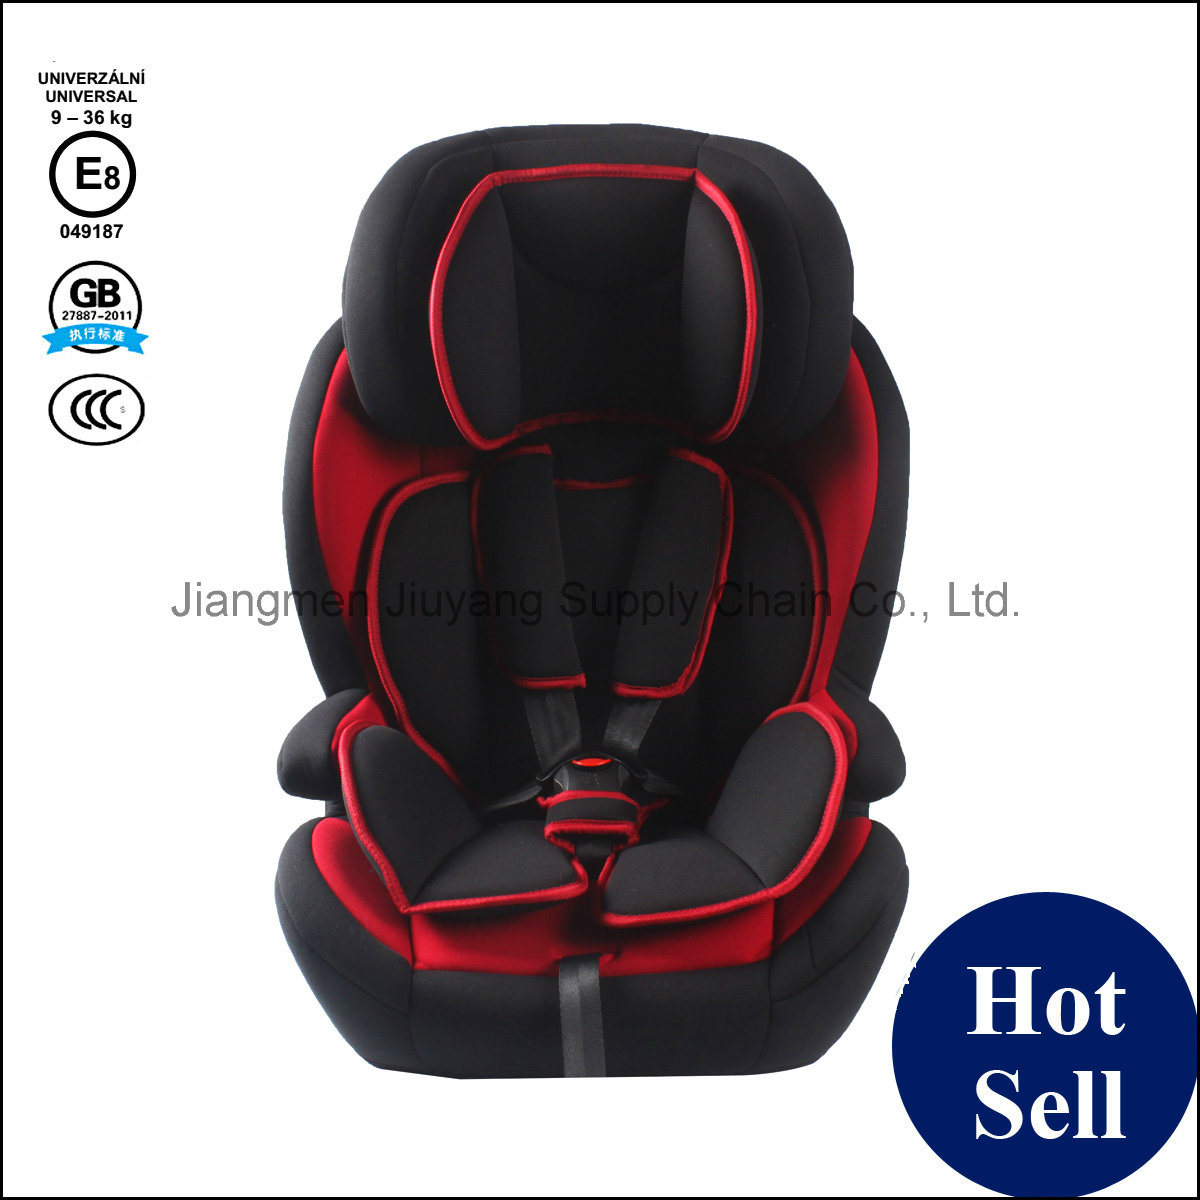 HDPE Frame Baby Safety Car Seat with ECE 049187 Certification